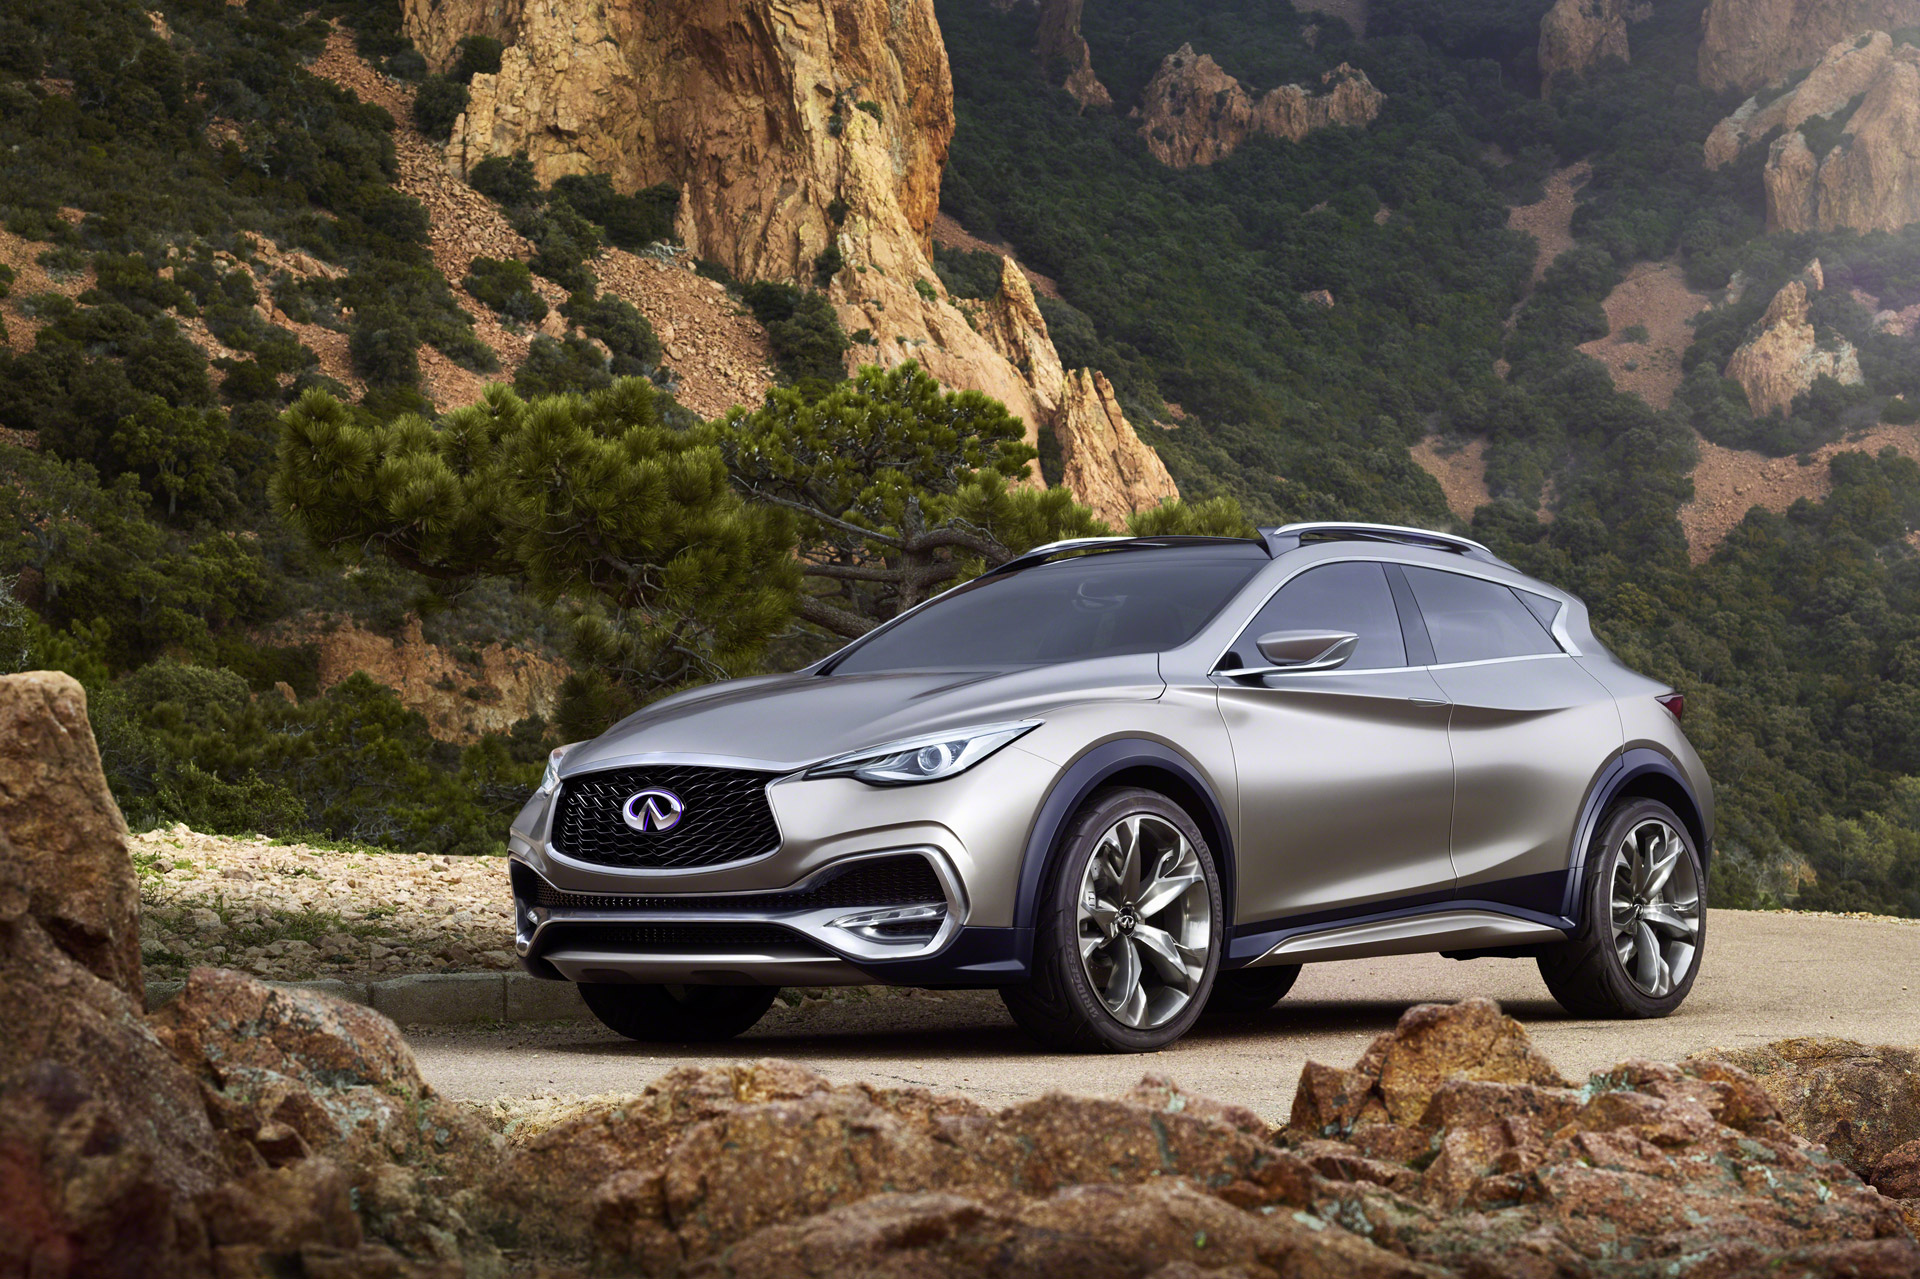 Infiniti Qx30 Concept Small Luxury Suv Previews 2016 Model At Geneva Show